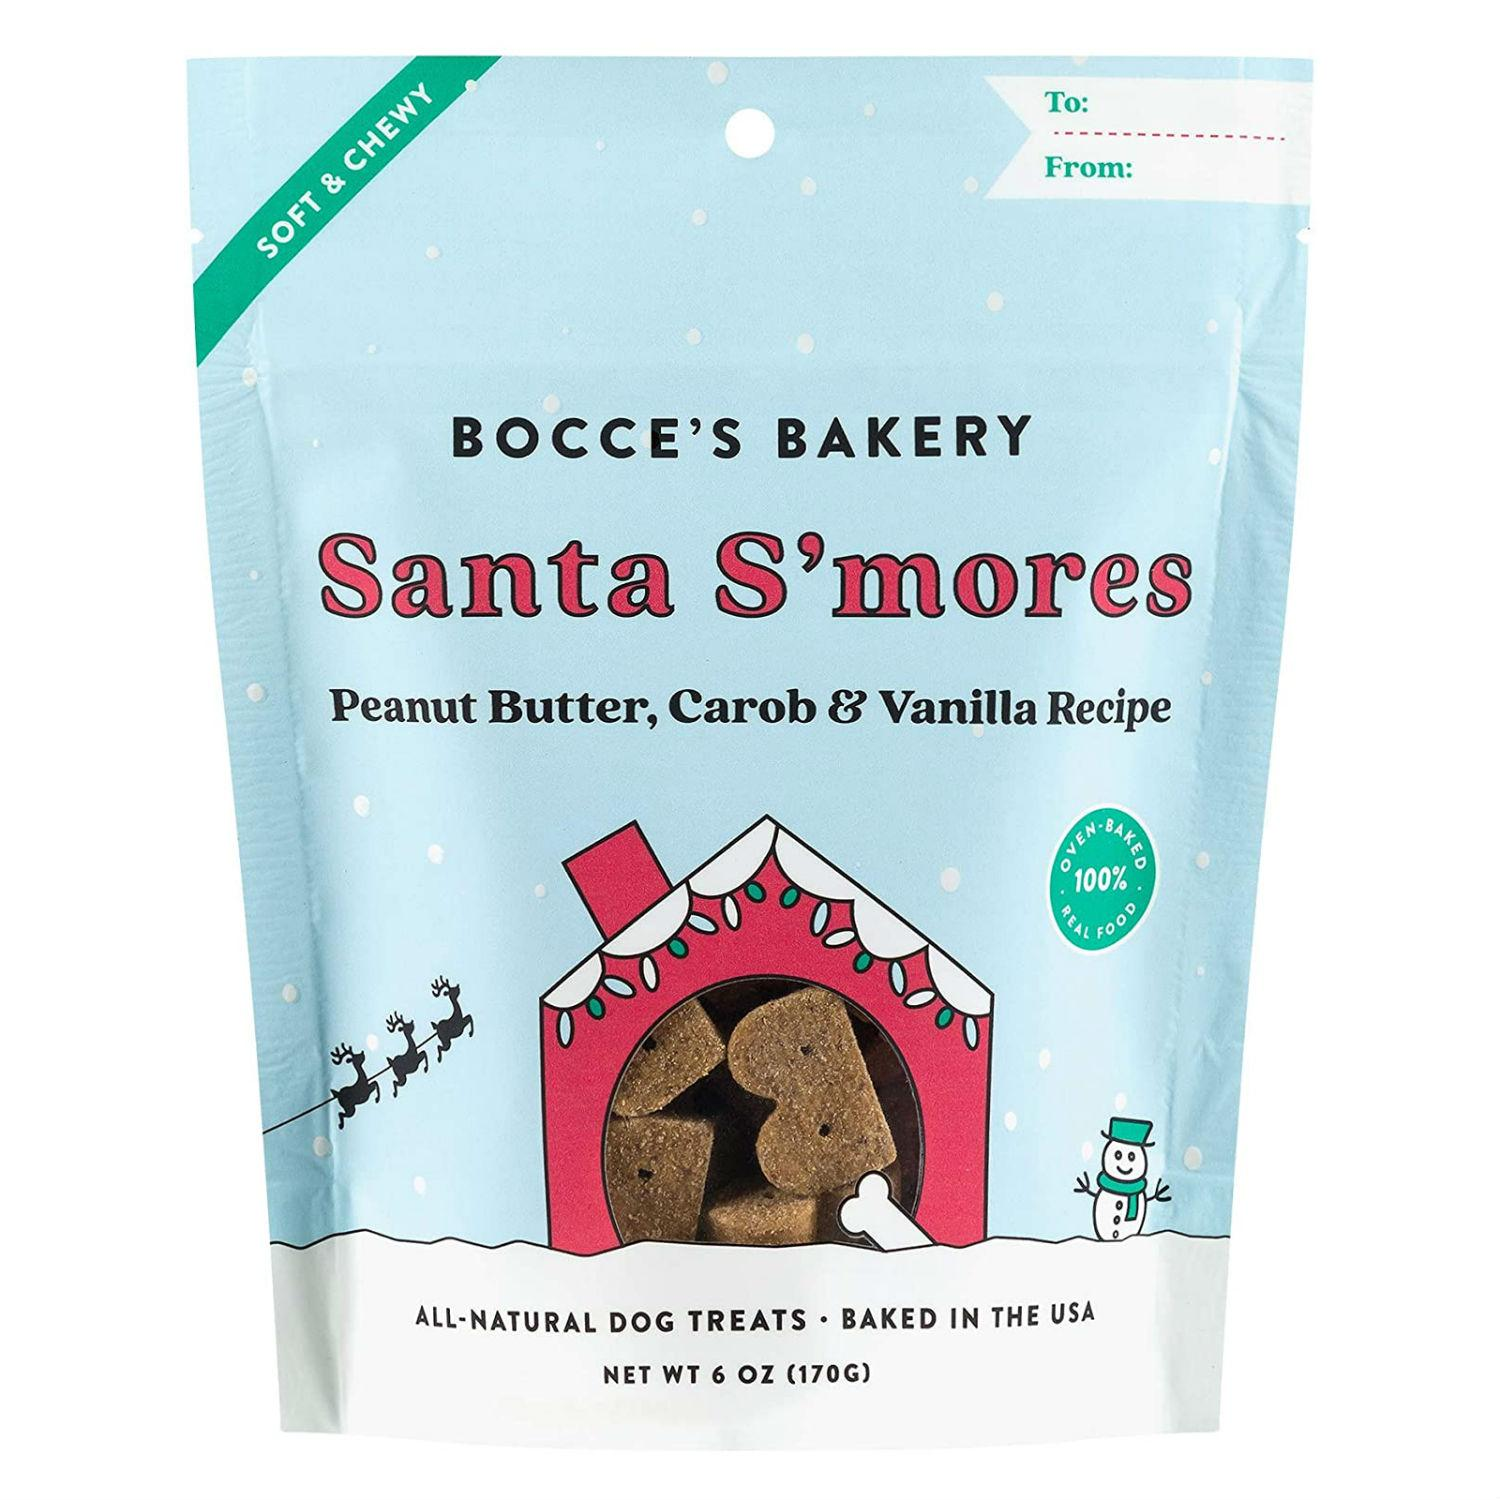 Bocce's Bakery Holiday Santa S'mores Dog Treats - Peanut Butter, Carob & Vanilla